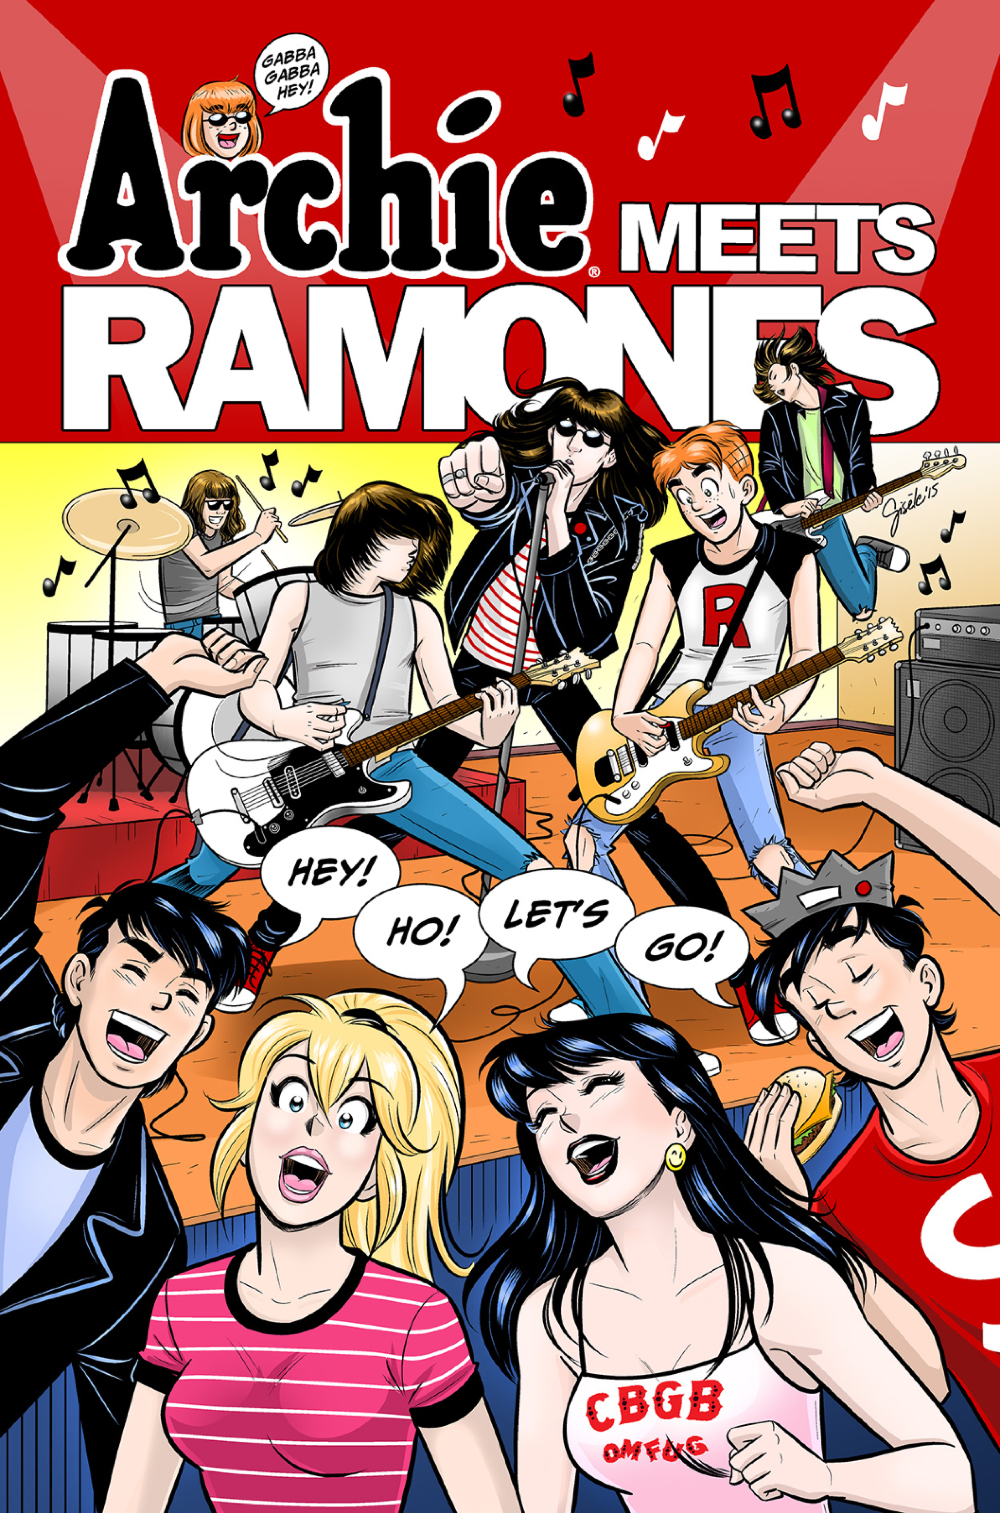 ARCHIE MEETS RAMONES Promotional Artwork by Gisele